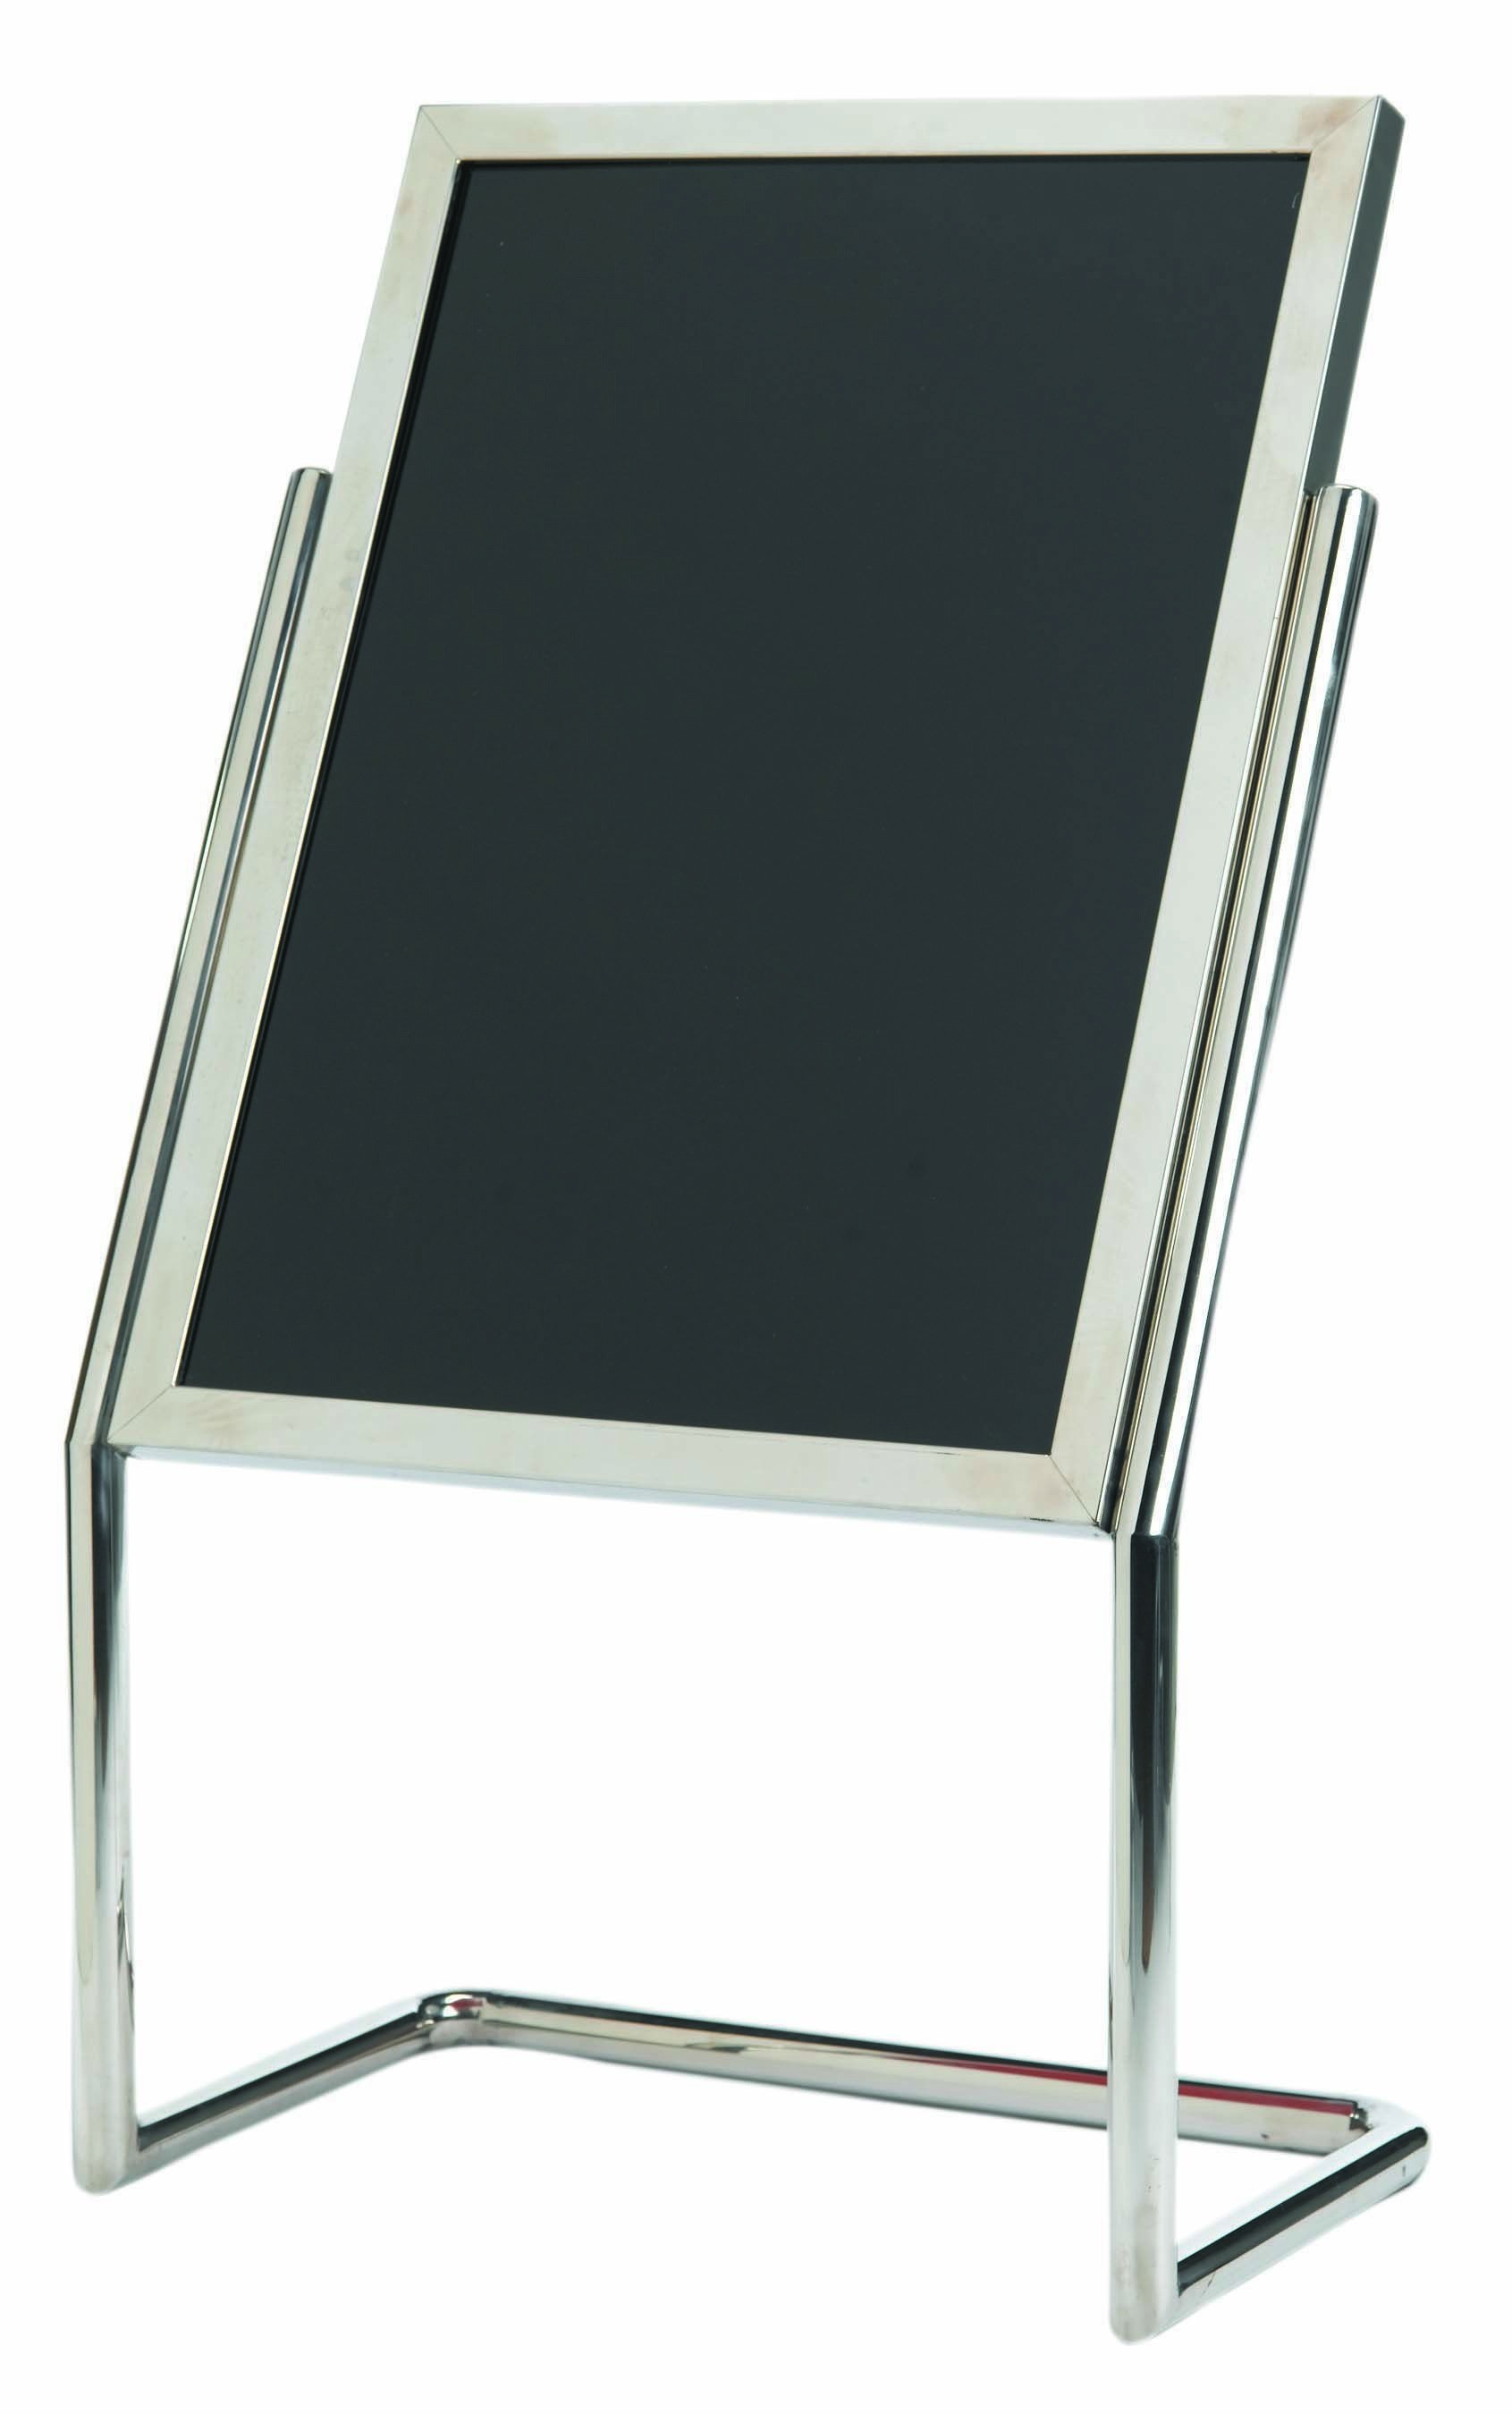 Aarco Products P-17C Double Pedestal Free Standing Display/Broadcaster Chrome Frame with Markerboard